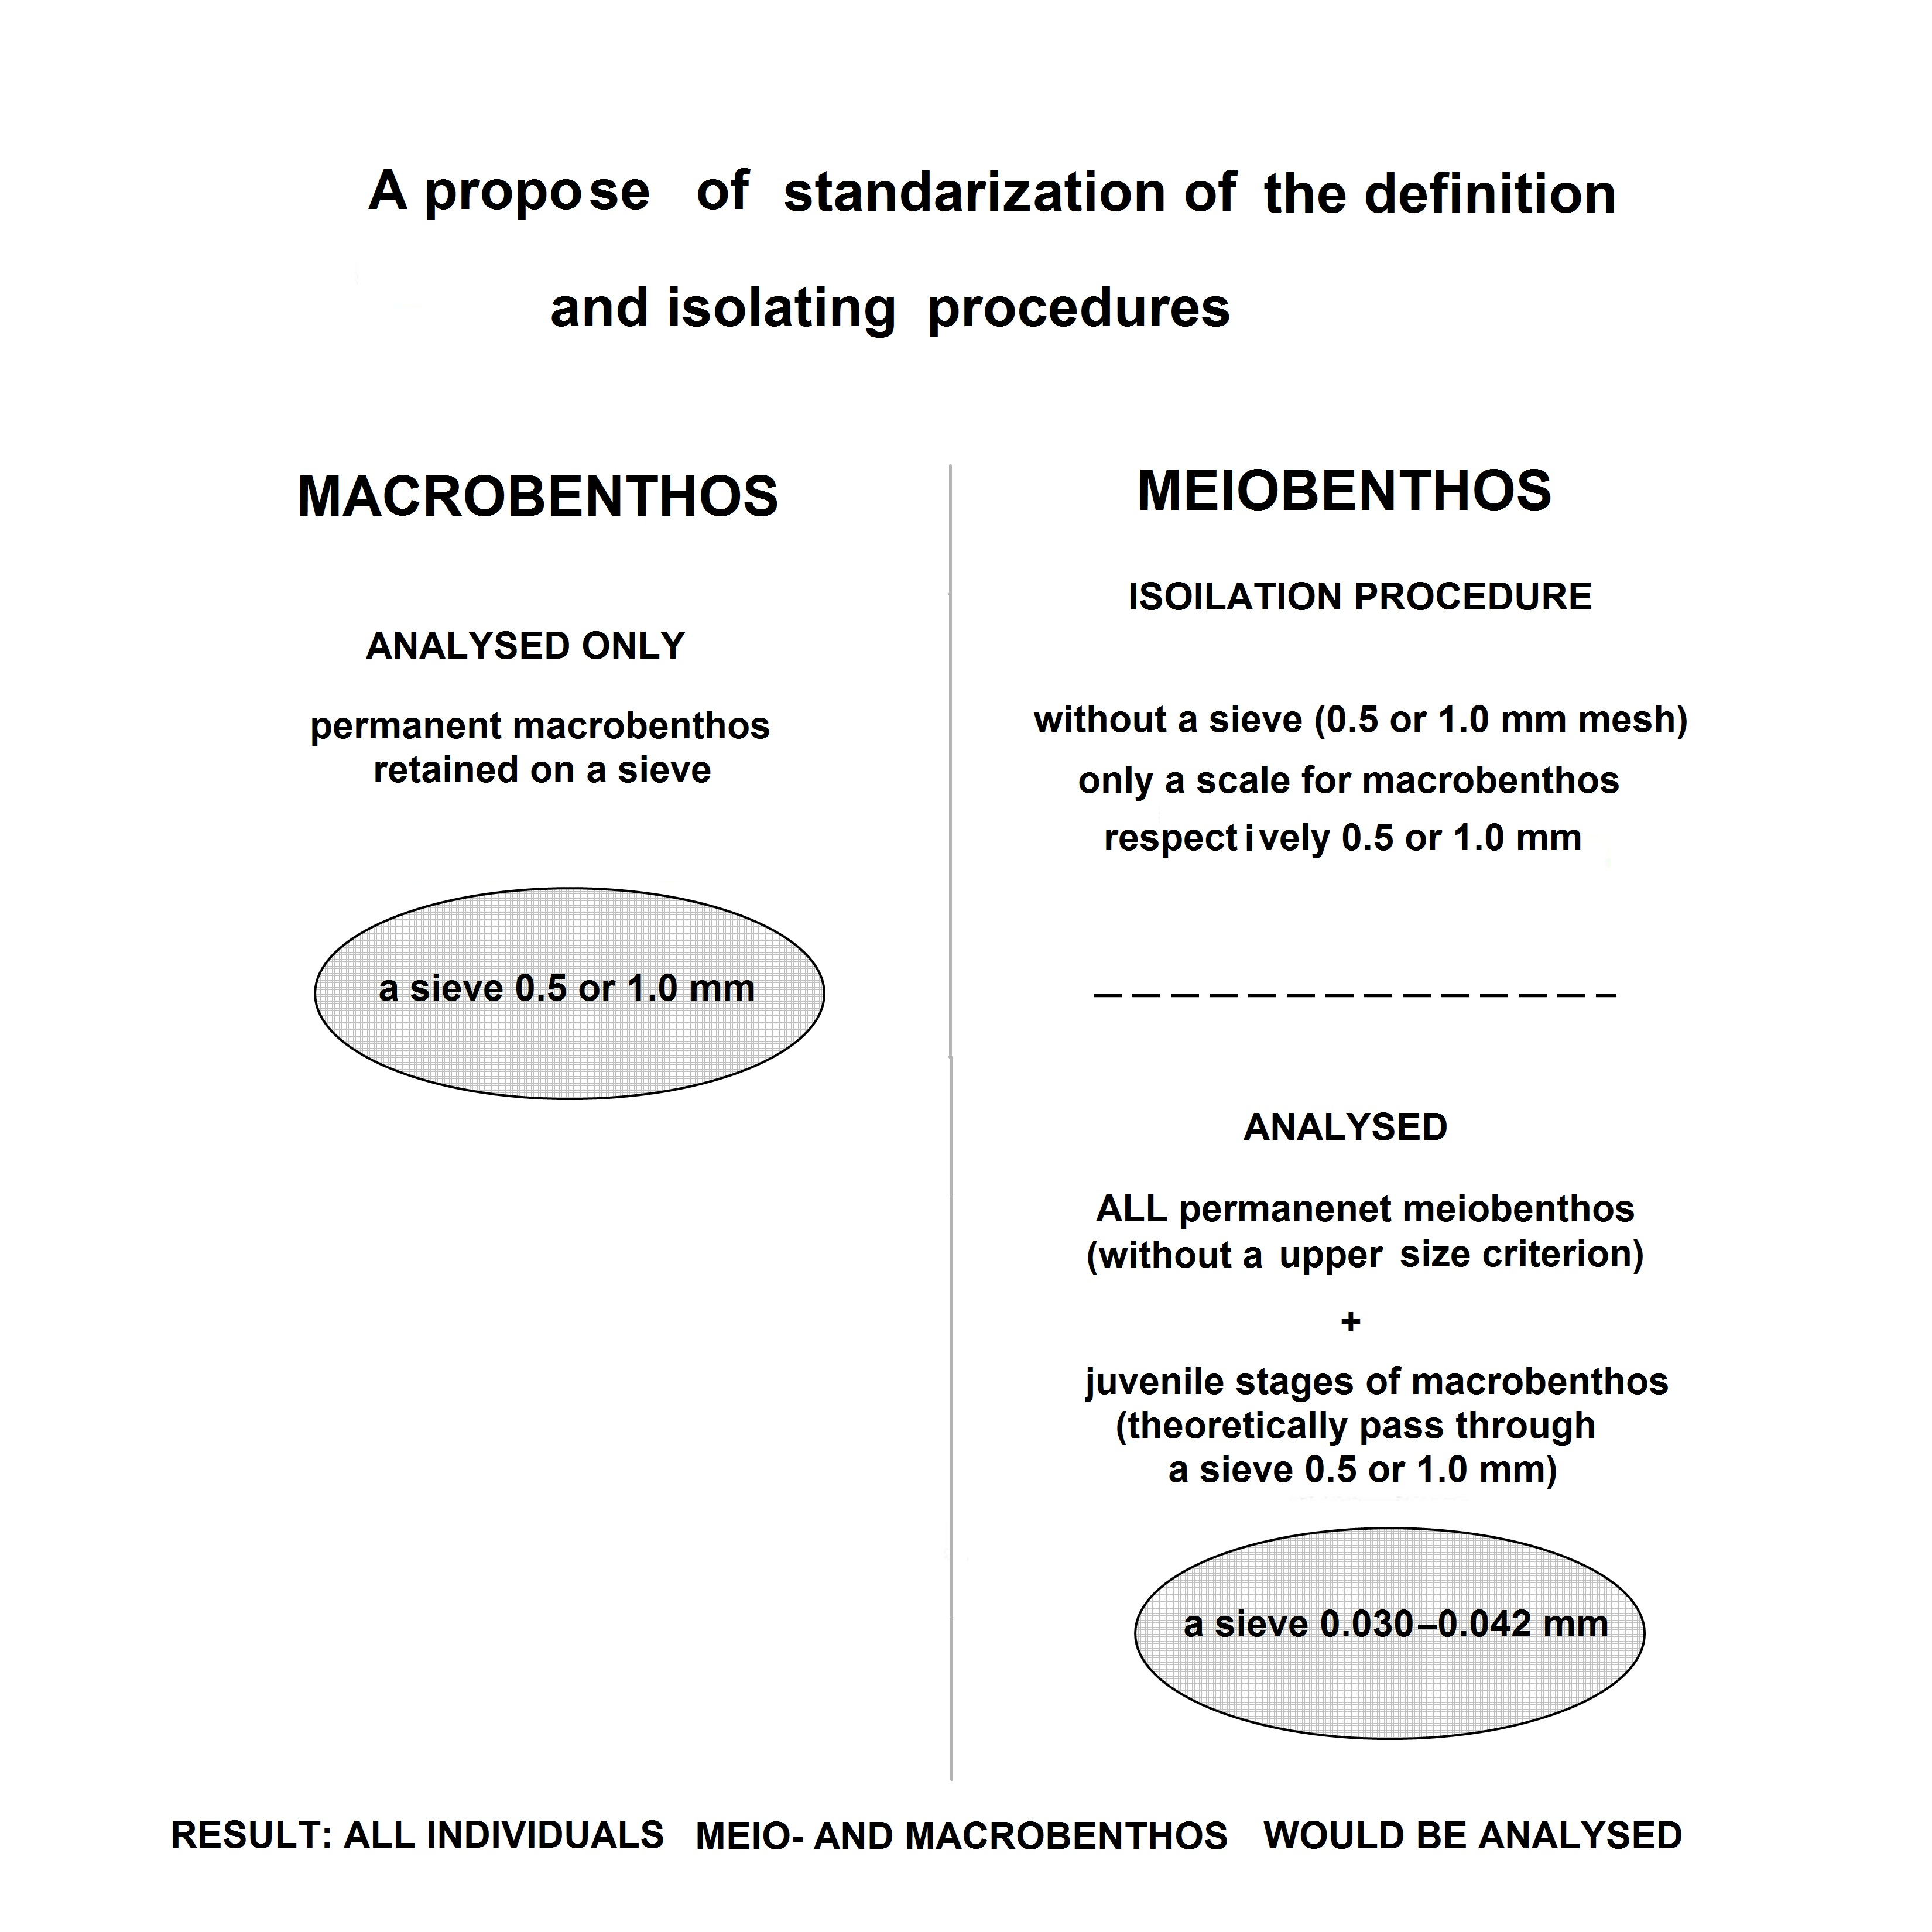 Fig.3. A propose of standardization of the definition and collected procedures for meio- and macrobenthos